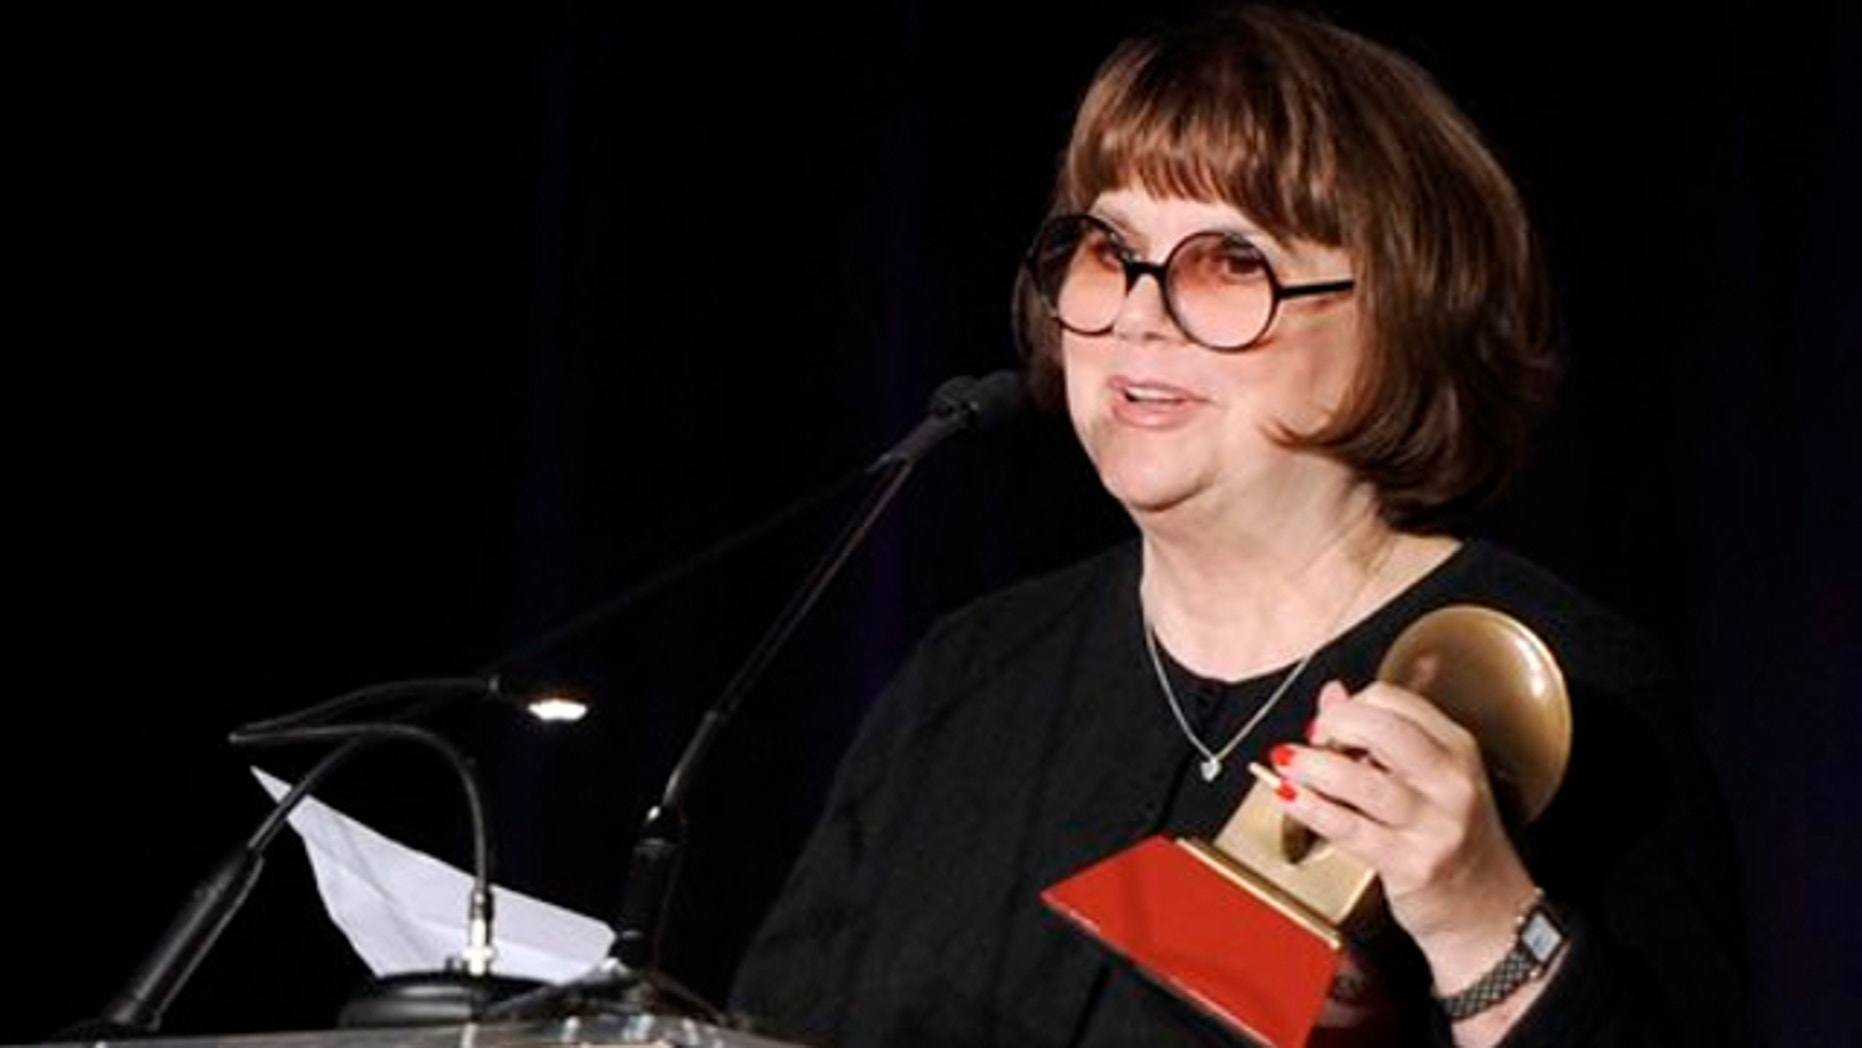 FILE: Nov. 9, 2011: Linda Ronstadt accepts the Life Time Achievement award at the Latin Recording Academy Lifetime Achievement Award and Trustees Award ceremony in Las Vegas.